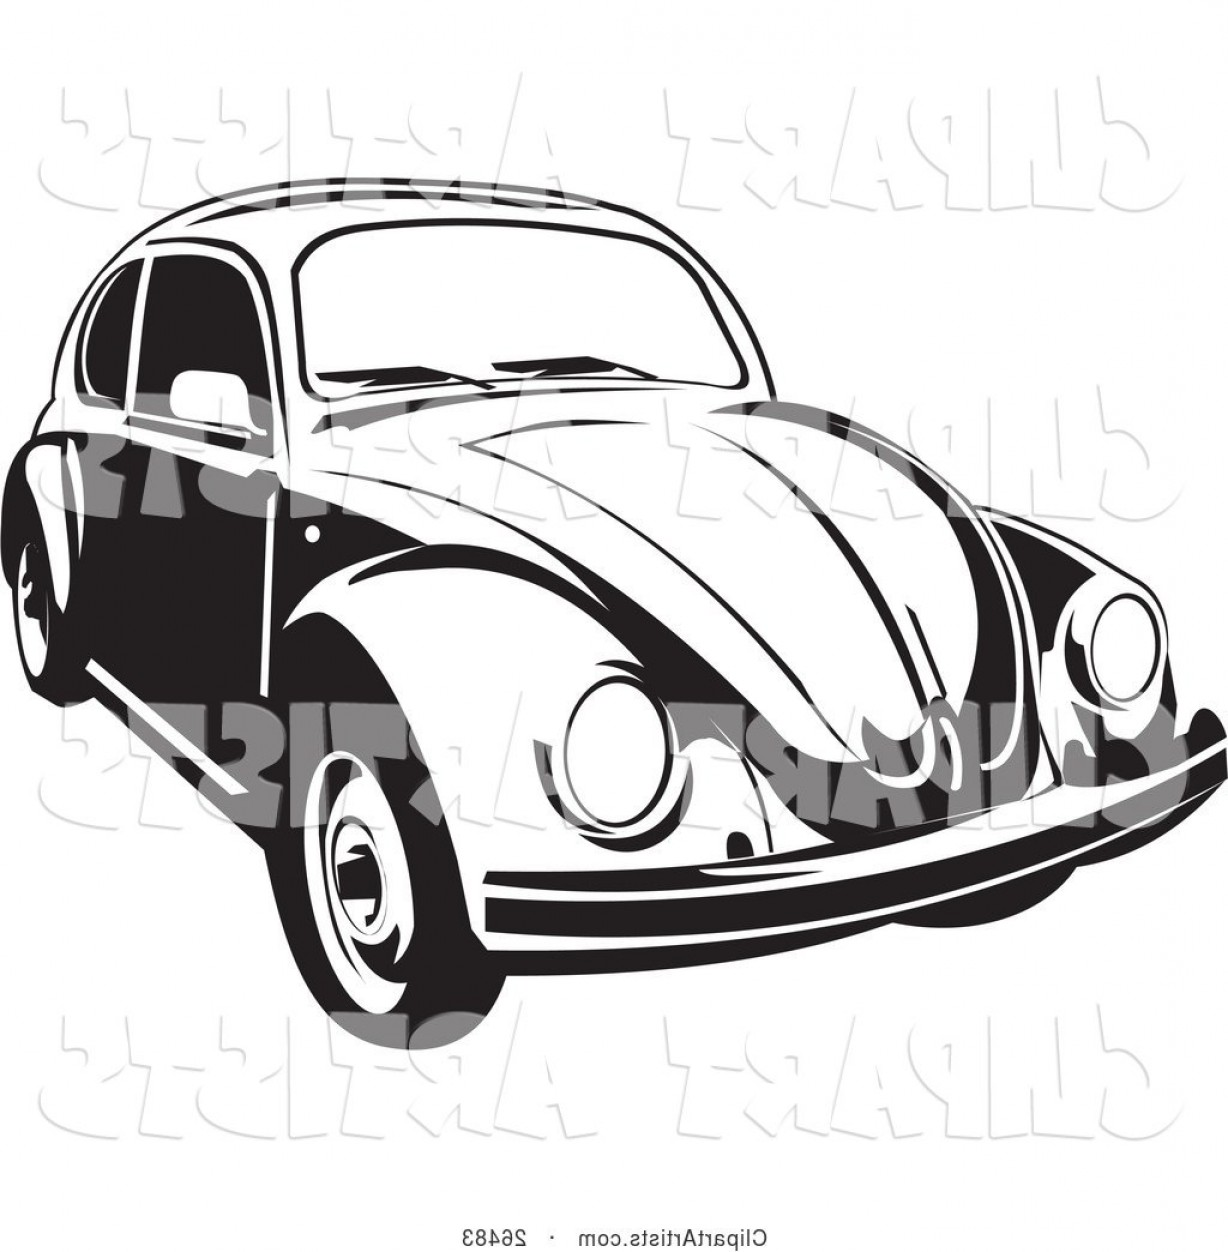 1228x1252 Vector Clipart Volkswagen Beetle Car In Black And White By David